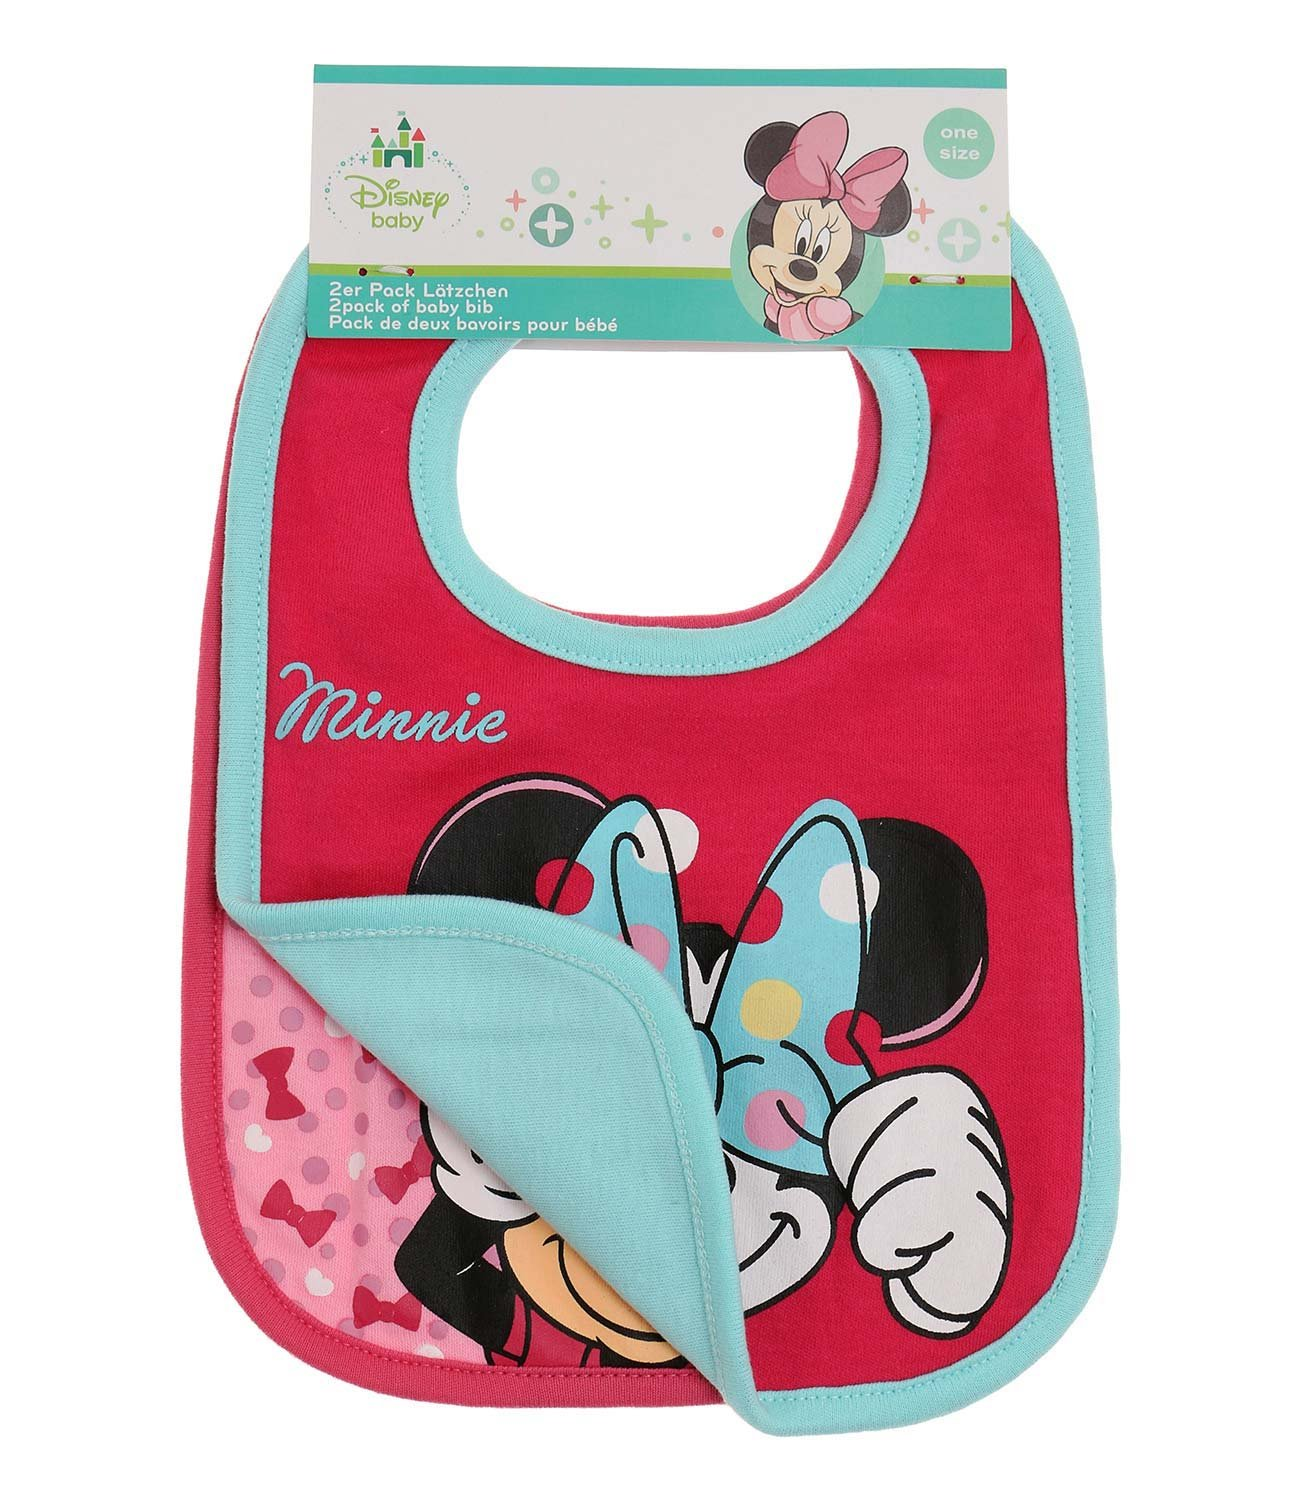 Disney Minnie Babies 2 pack bib 2016 Collection - fuchsia WS-133231